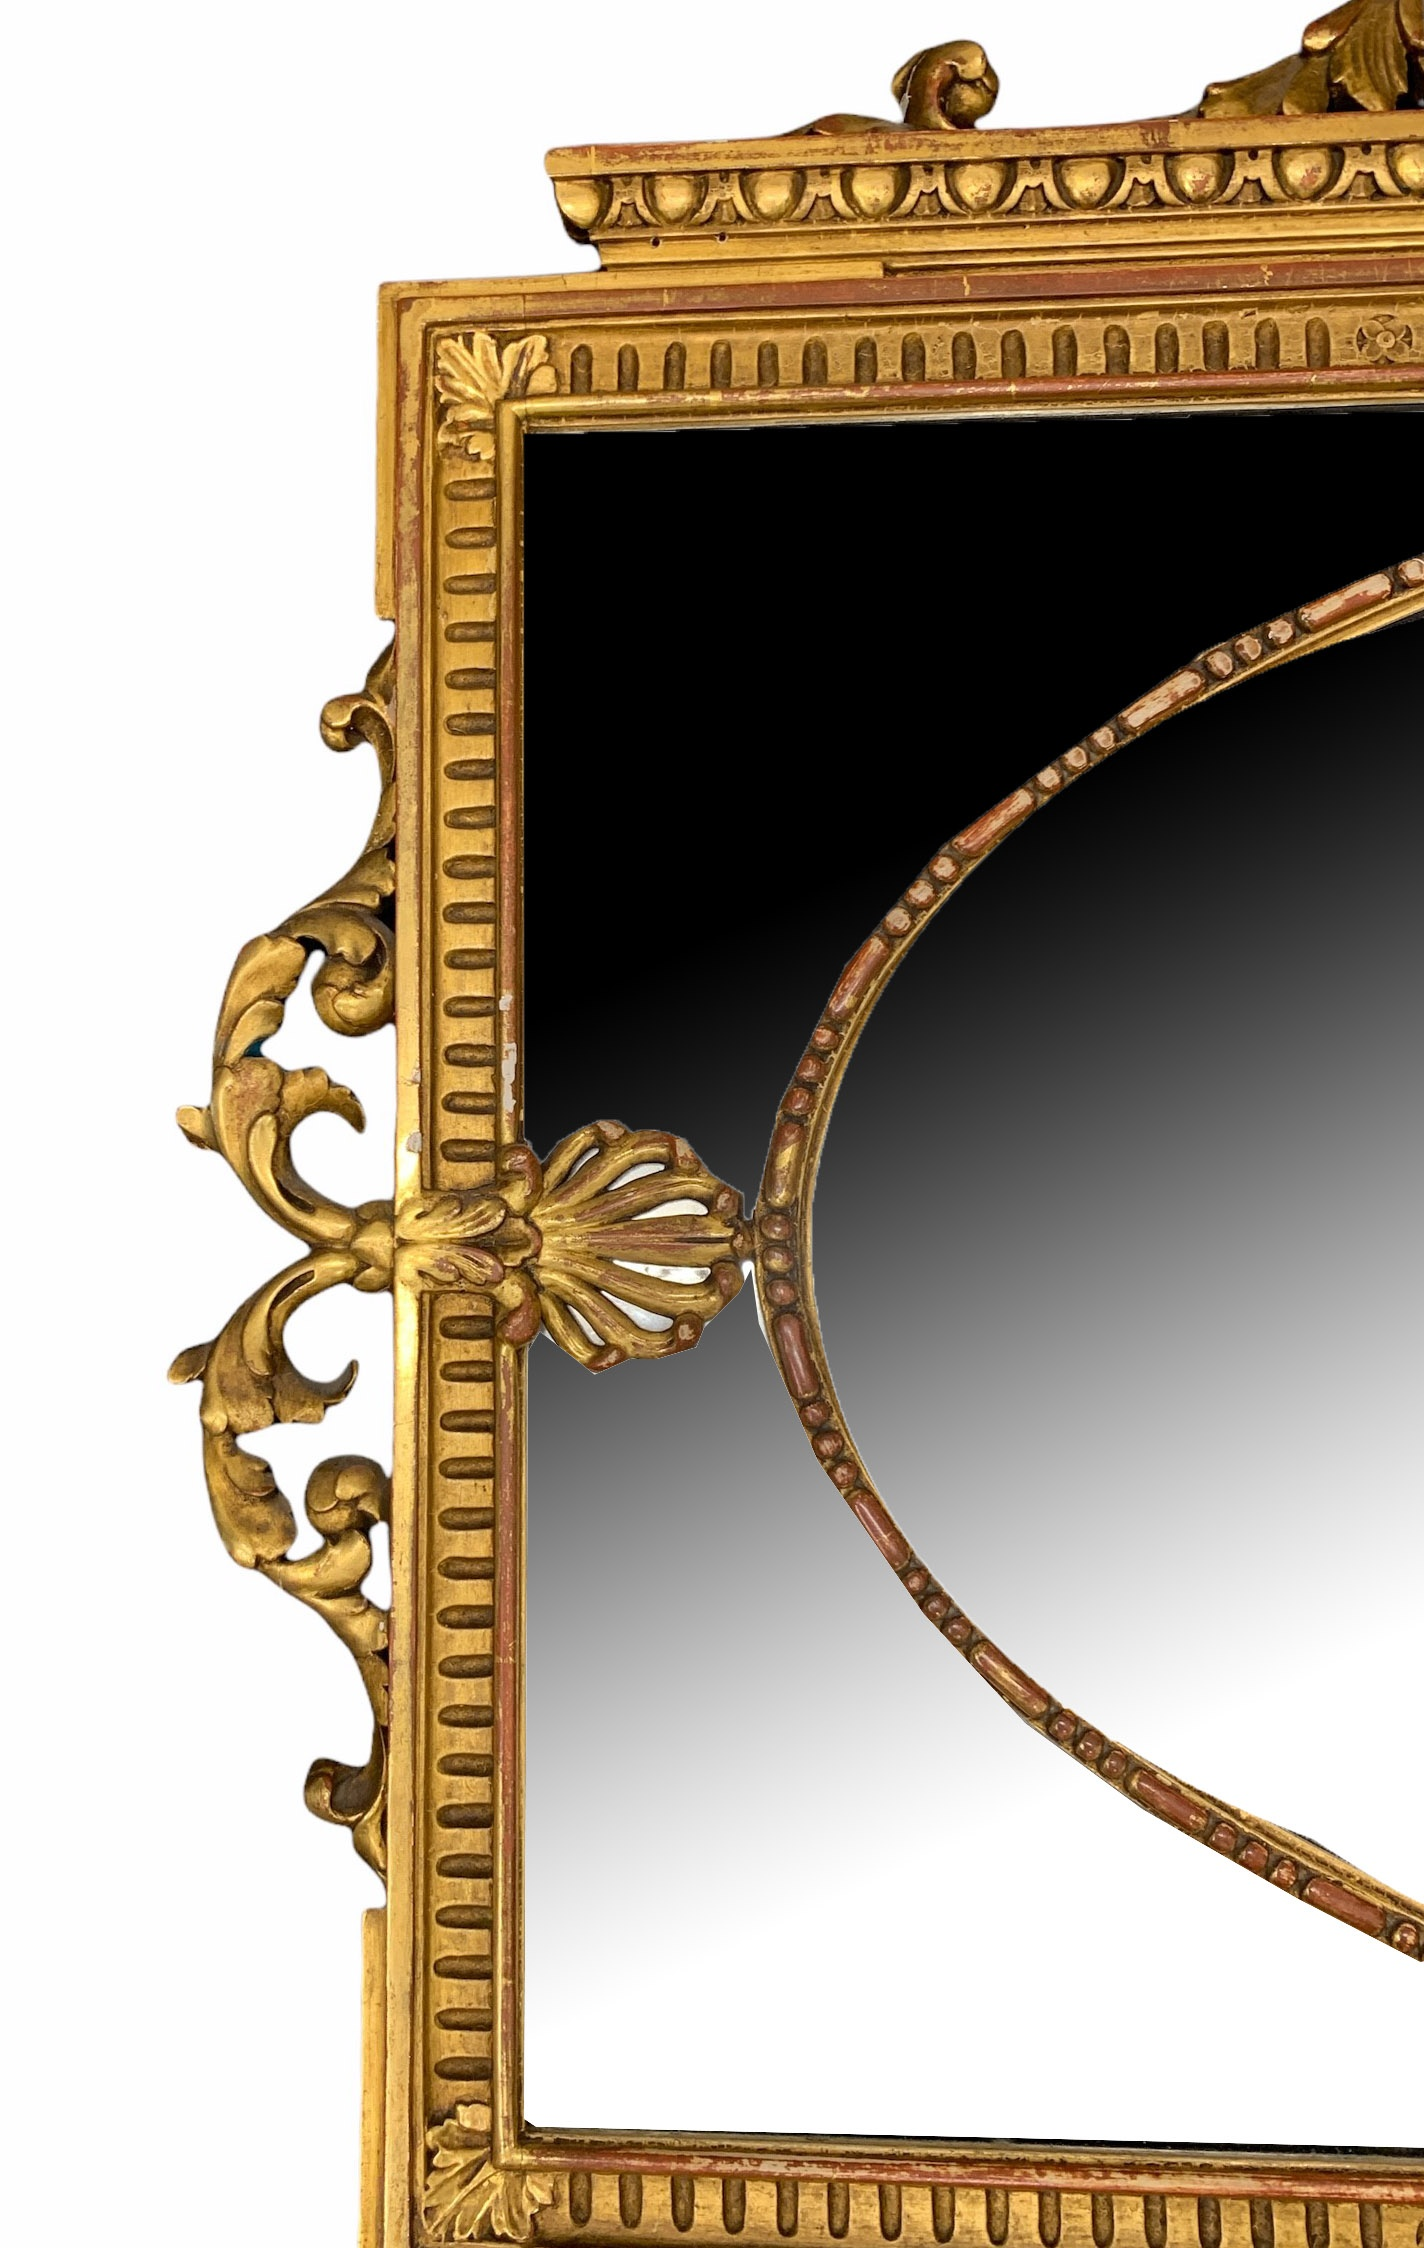 MANNER OF ROBERT ADAM, A LATE 19TH CENTURY CARVED GILTWOOD MIRROR Decorated with scrolling - Image 3 of 3